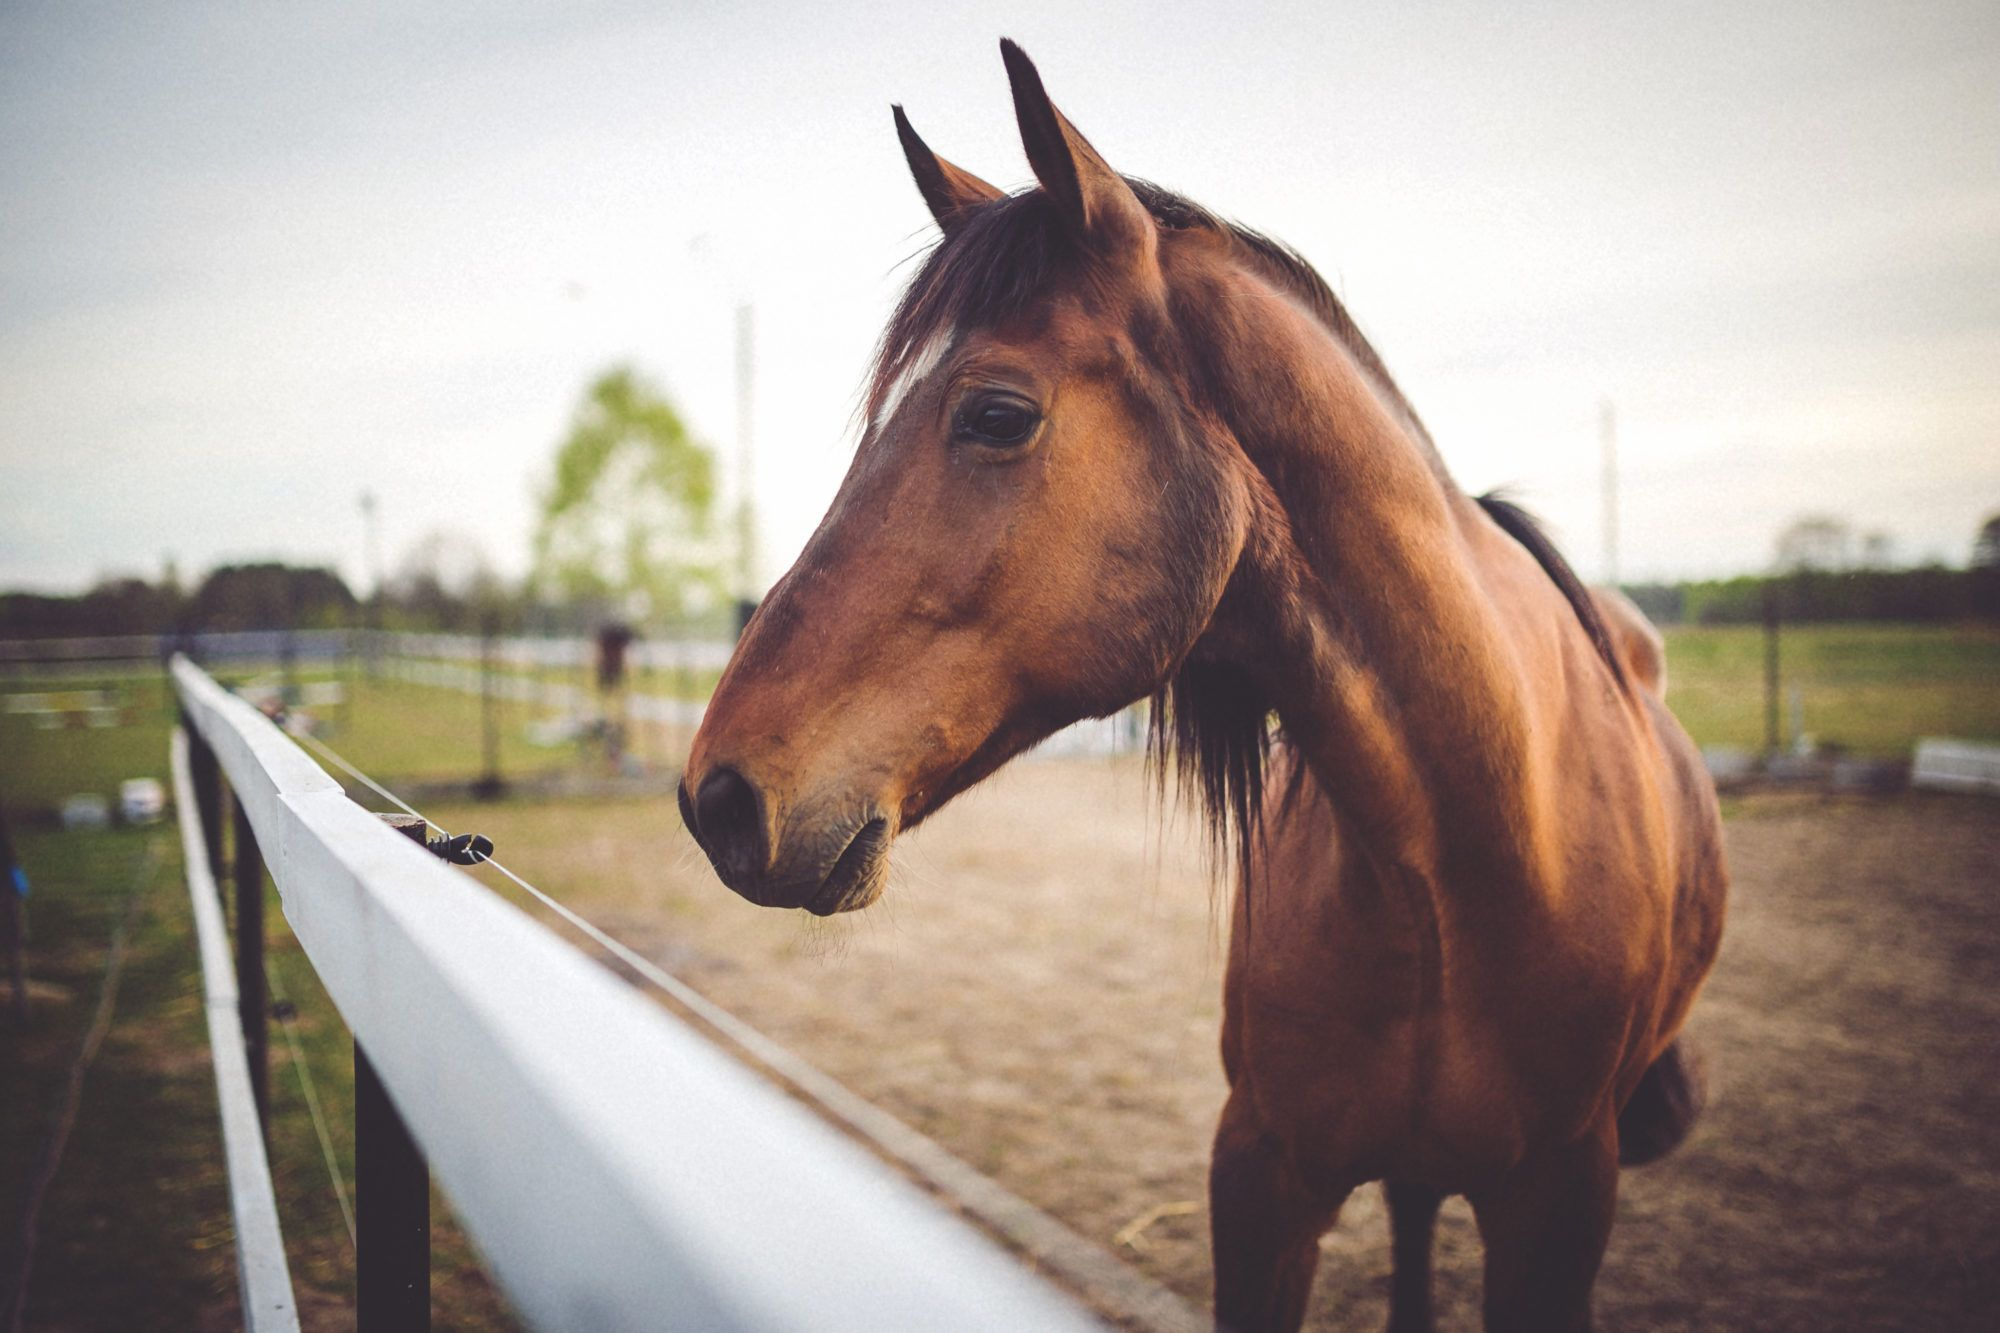 horse whispering solves problems with horses